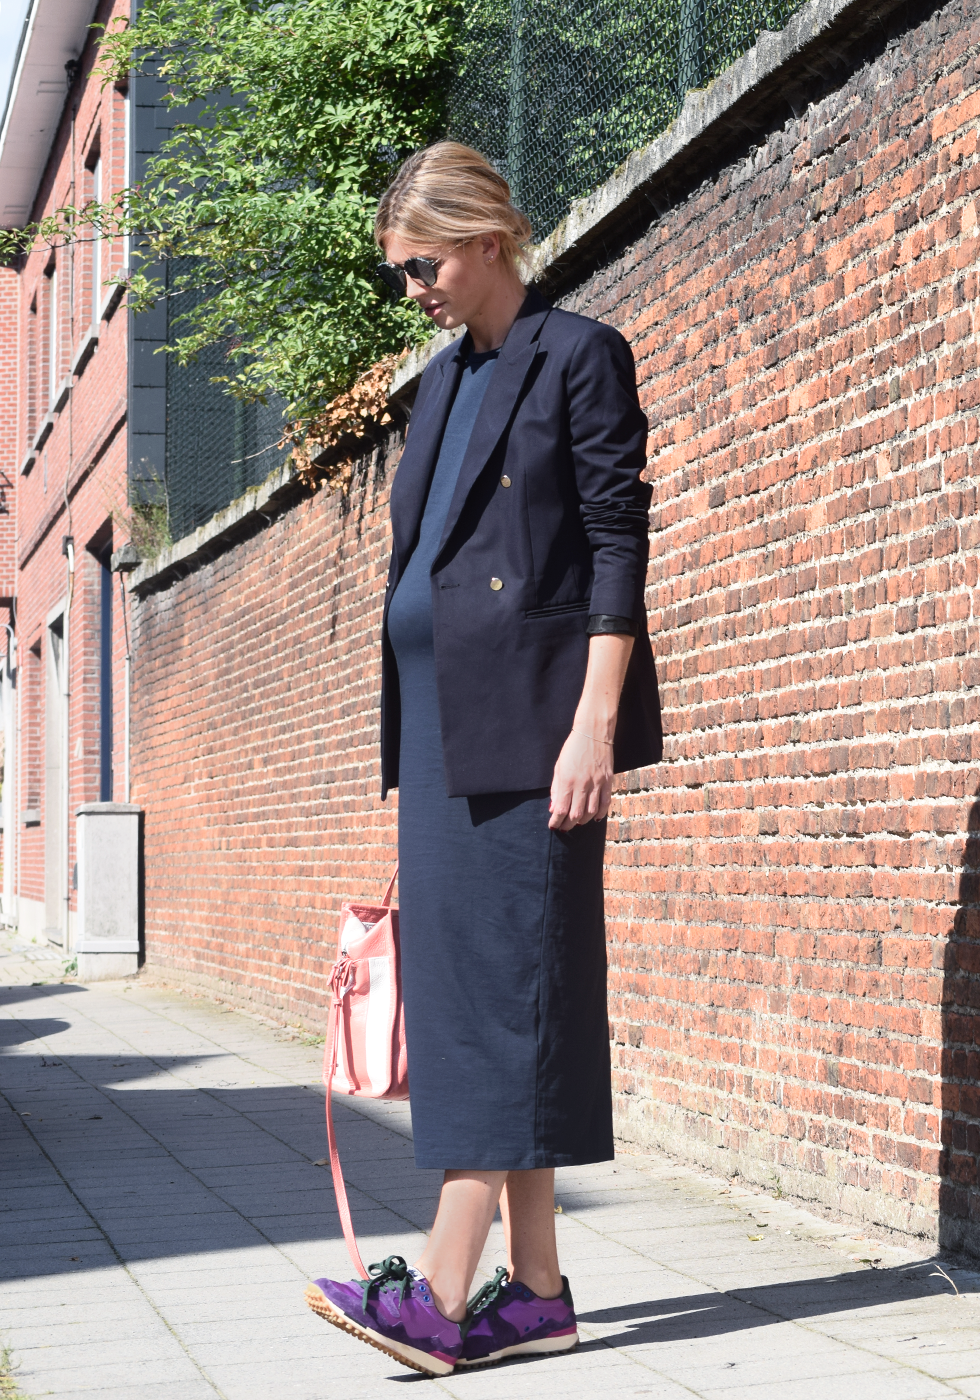 Outfit of the day, Dior, Dewolf, Max Mara, Balenciaga, Golden Goose, Marjon Snieders, Sandro, ootd, style, fashion, blogger, maternity, pregnancy, bump